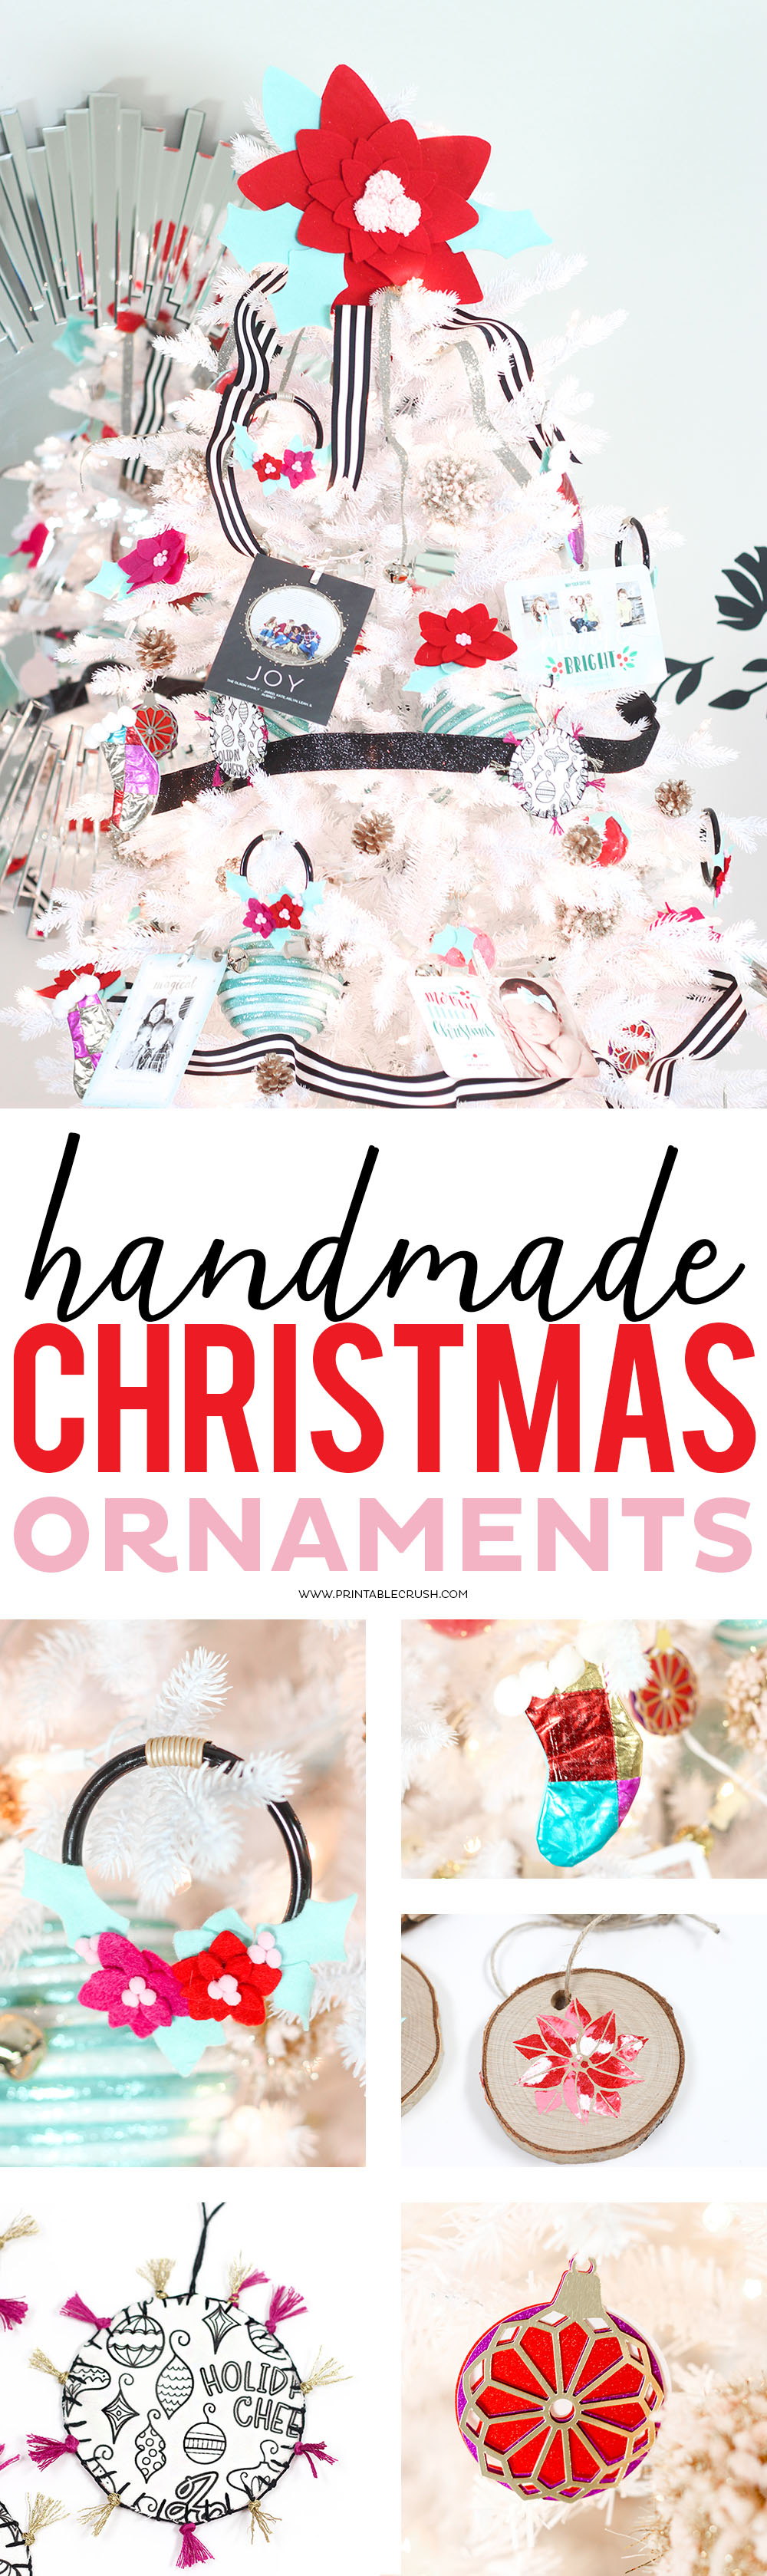 These Handmade Christmas Ornaments are perfect for anyone who is looking to get crafty and make their own ornaments this year!